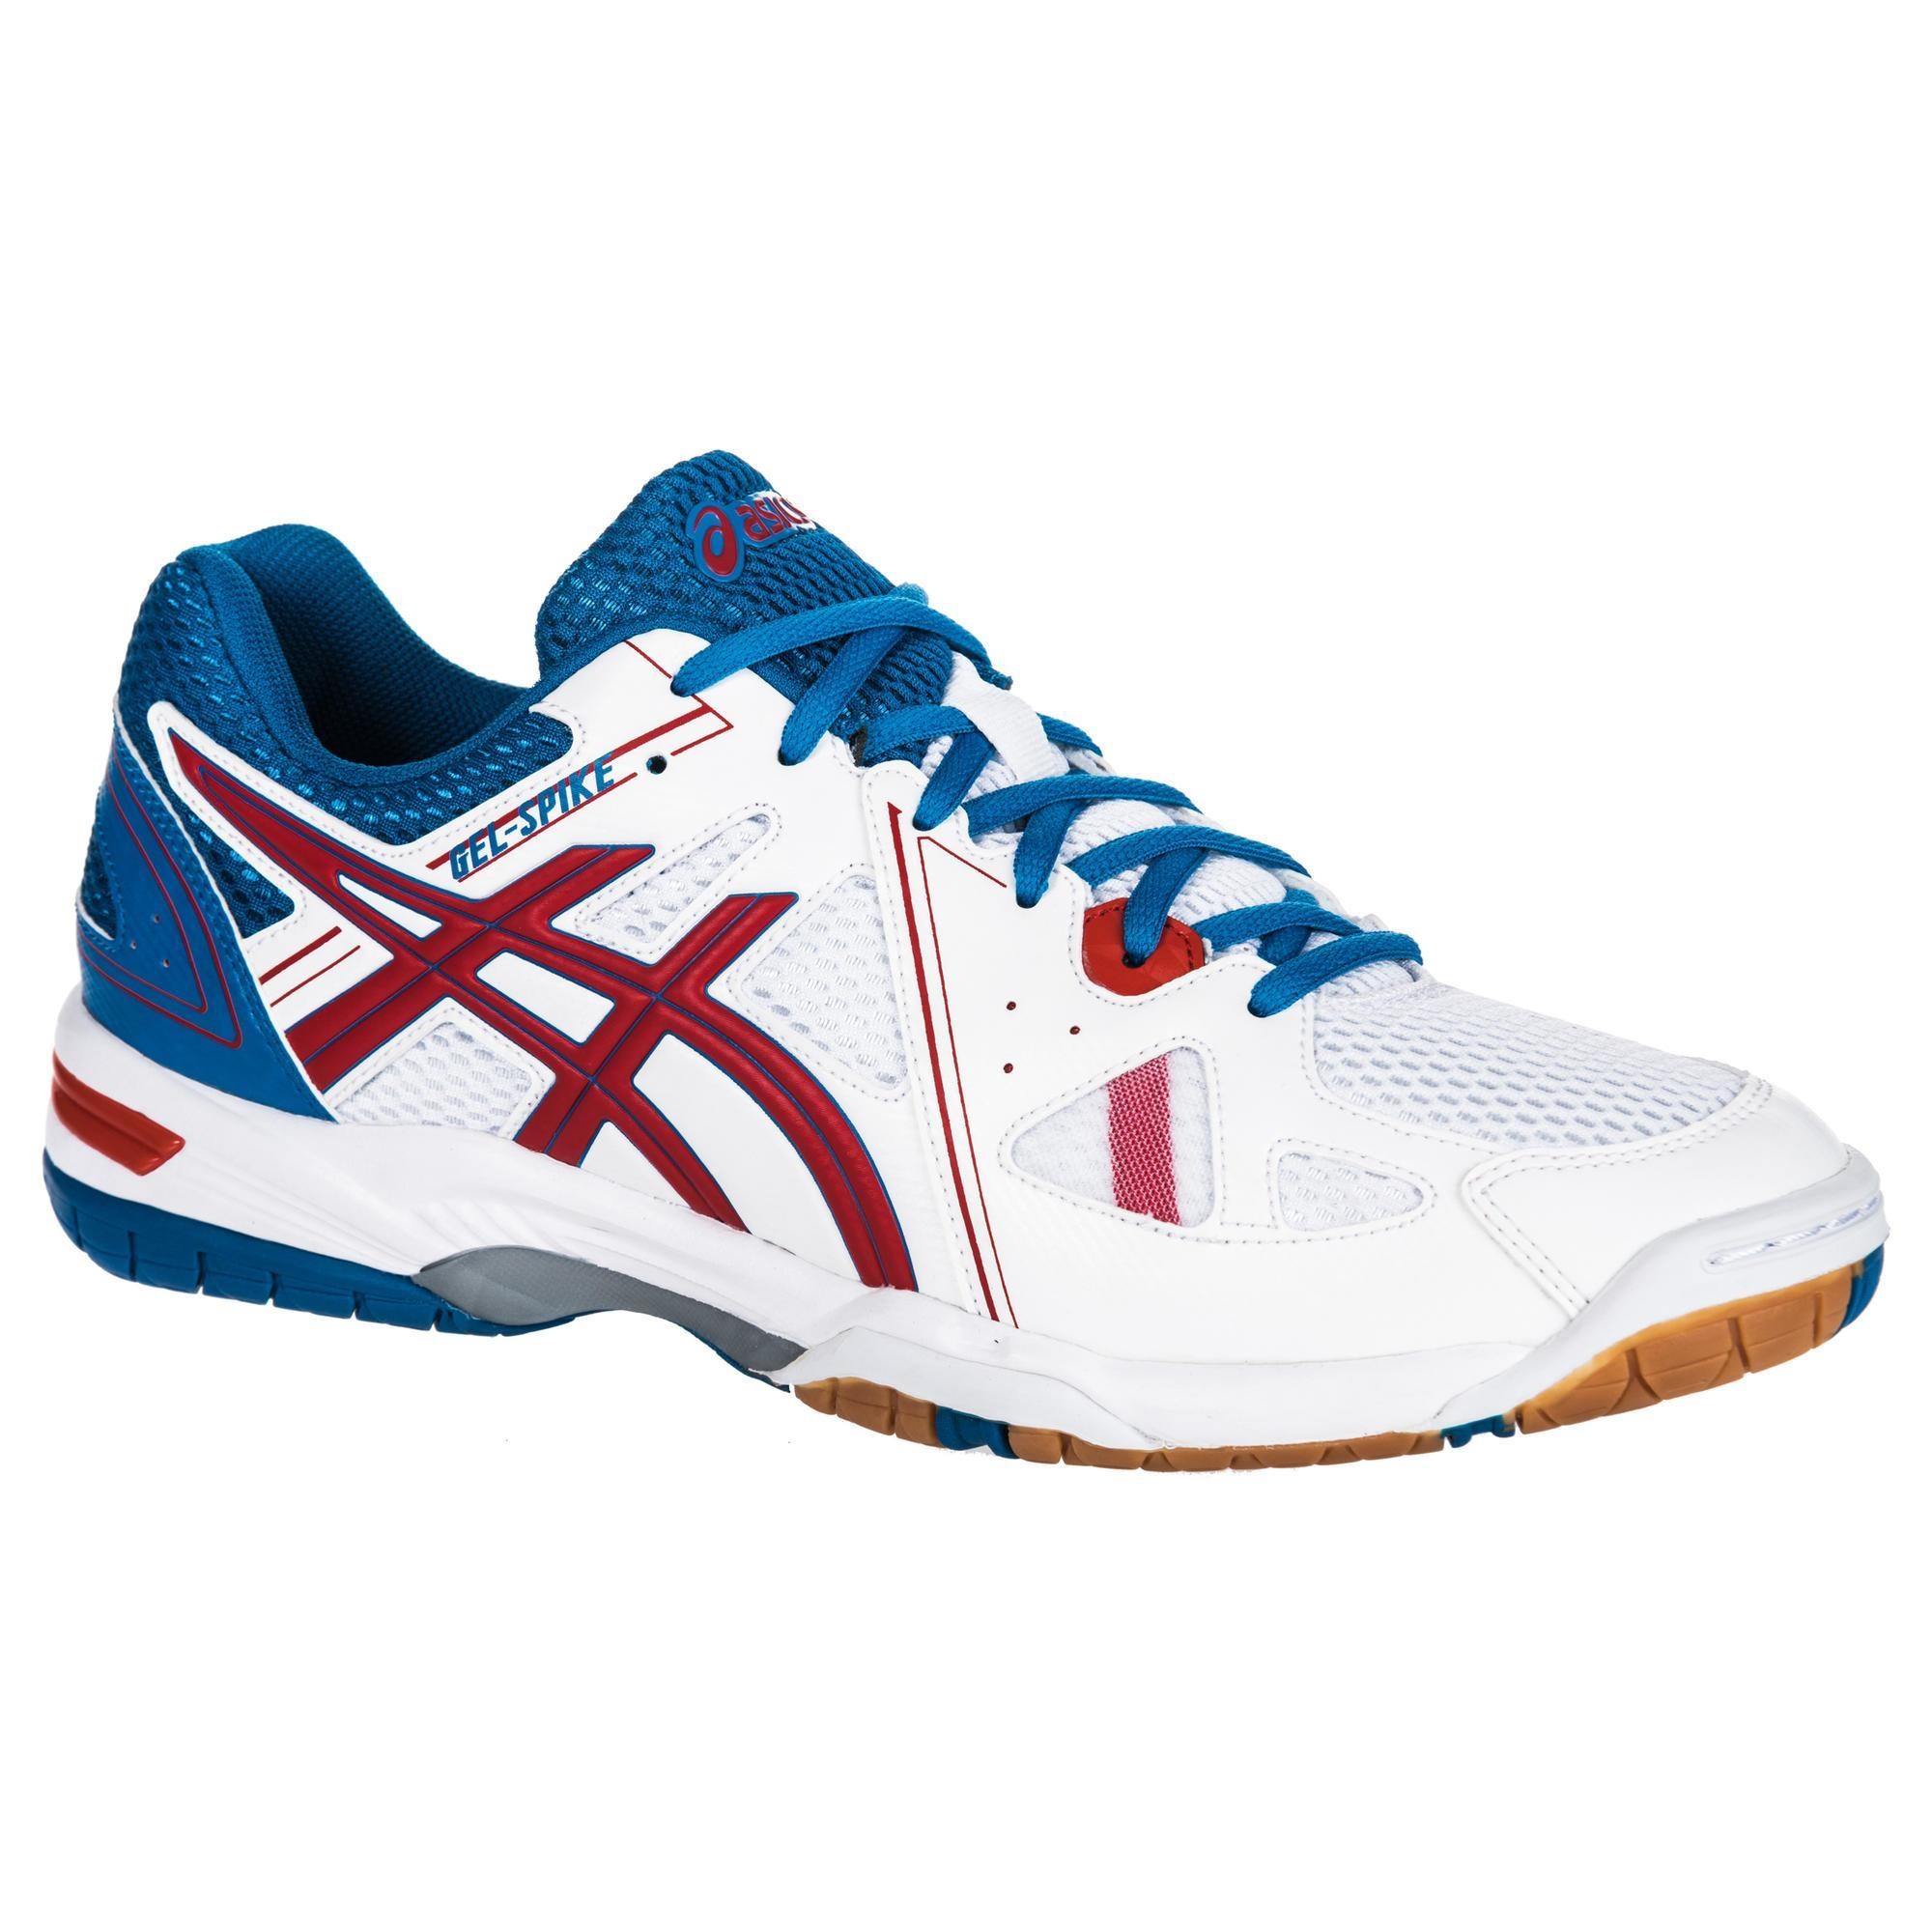 Asics Volleybalschoenen heren Gel Spike blauw/wit